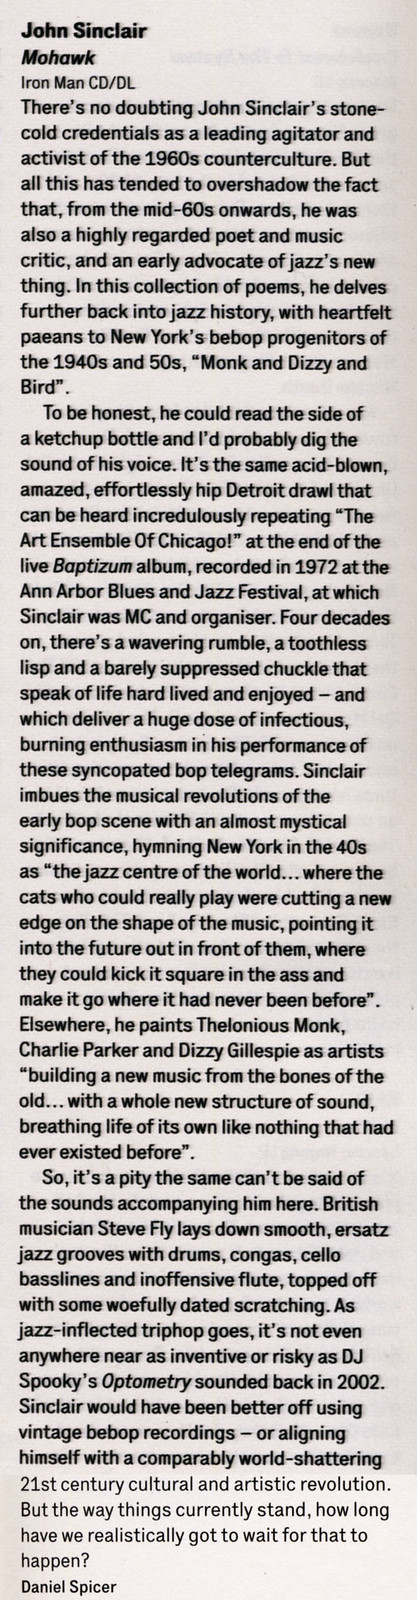 John Sinclair - Mohawk - The Wire - March 2014 album review